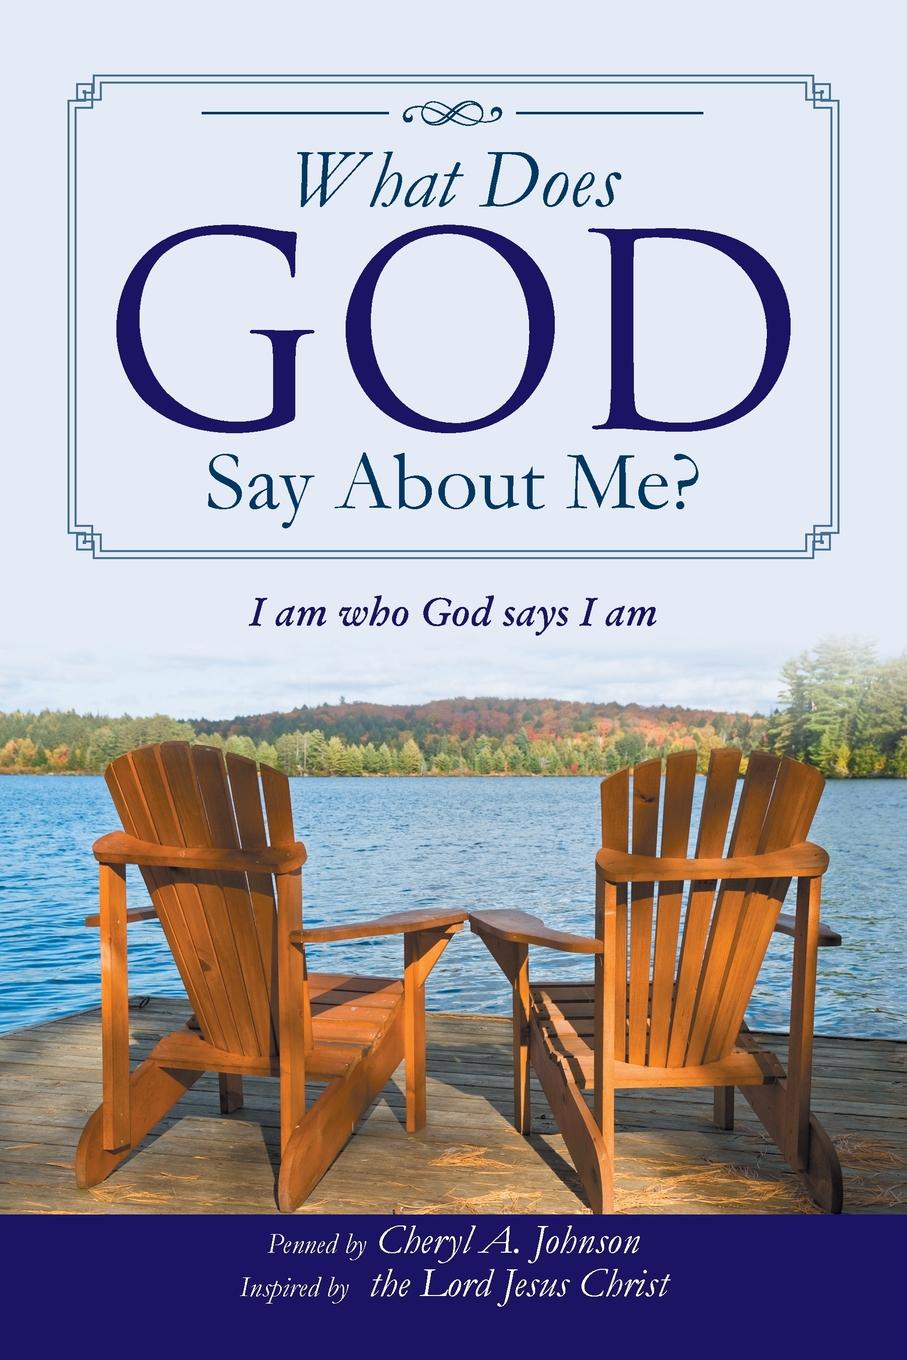 Cheryl A. Johnson What Does God Say About Me?. I am who God says I am carole buck annie says i do